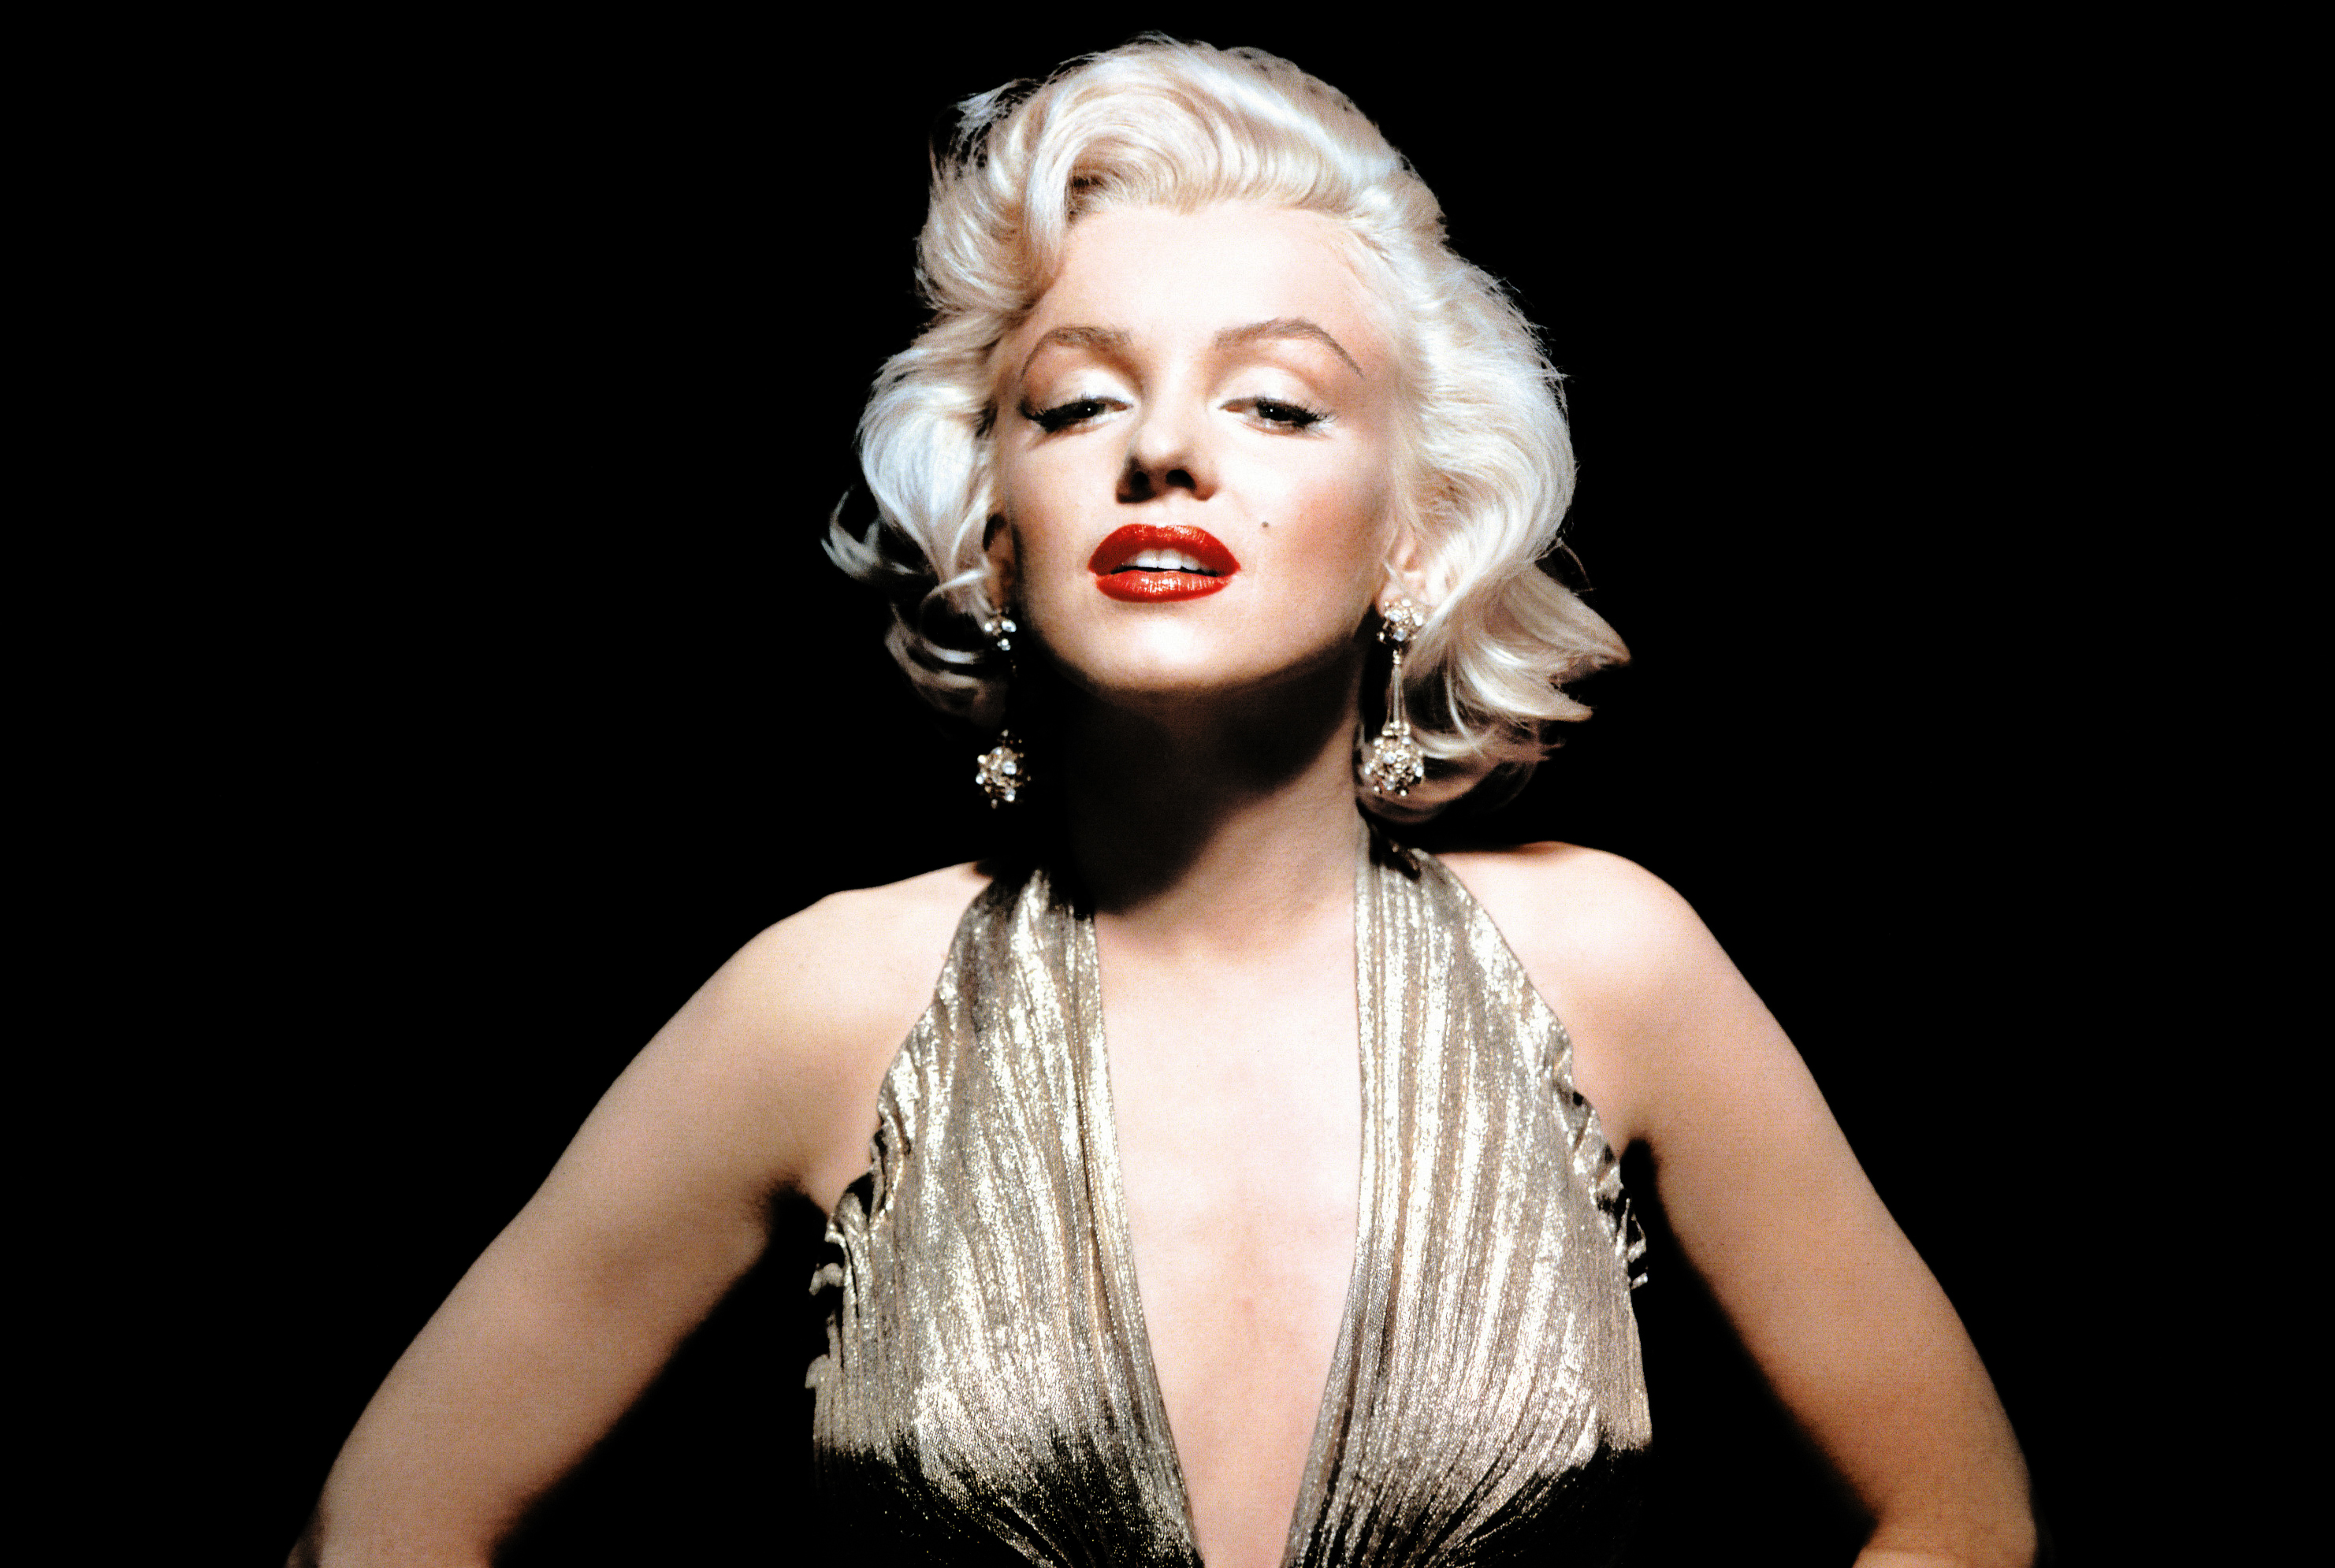 About Marilyn